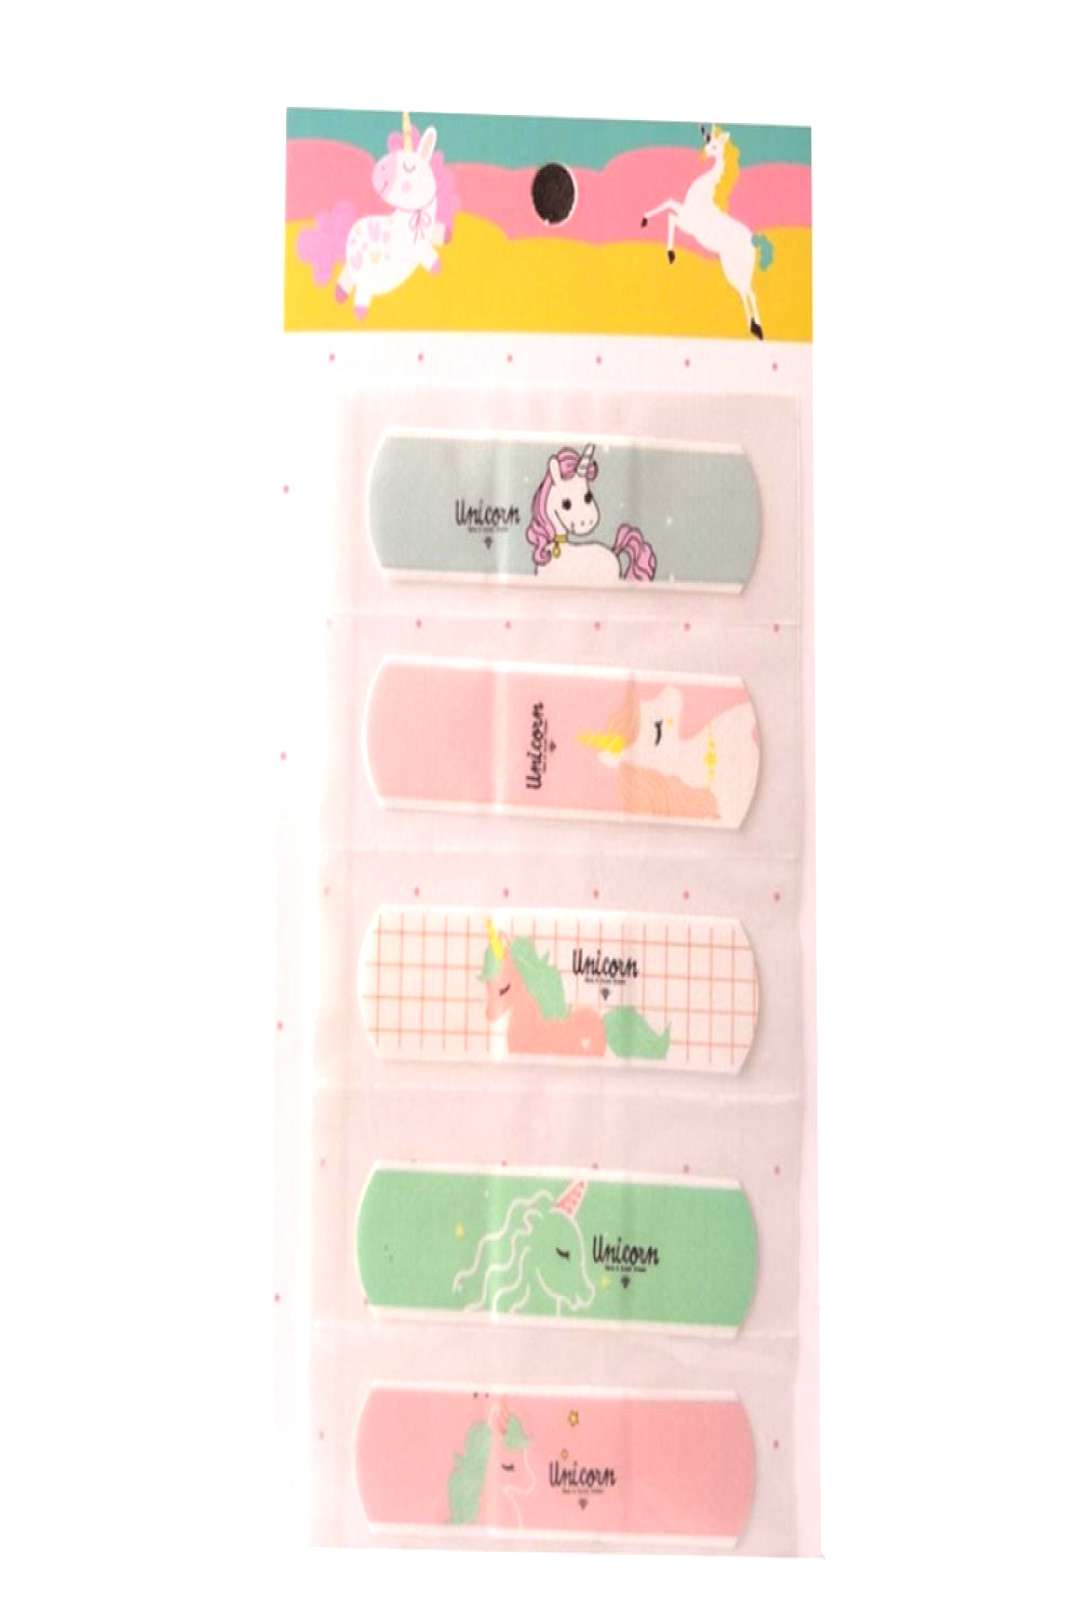 10Pcs/Set Waterproof Cartoon Bandage Sticker Baby Kids Care First Band Aid Travel Emergency Kit Pri